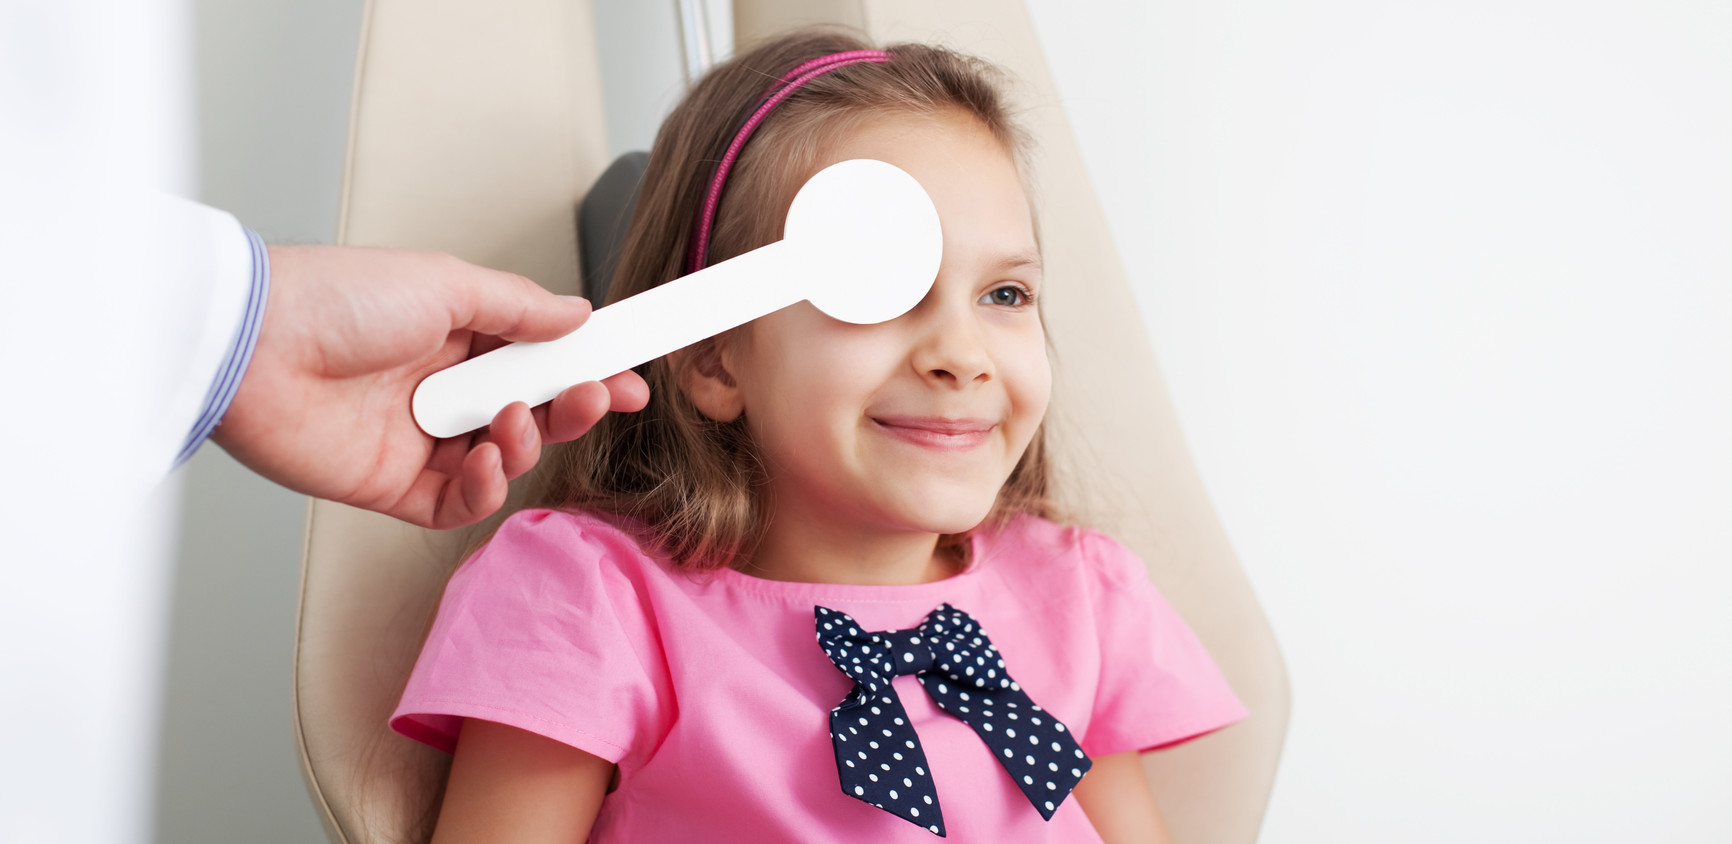 Young girl is having eye exam performed by optician, optometrist or eye doctor.